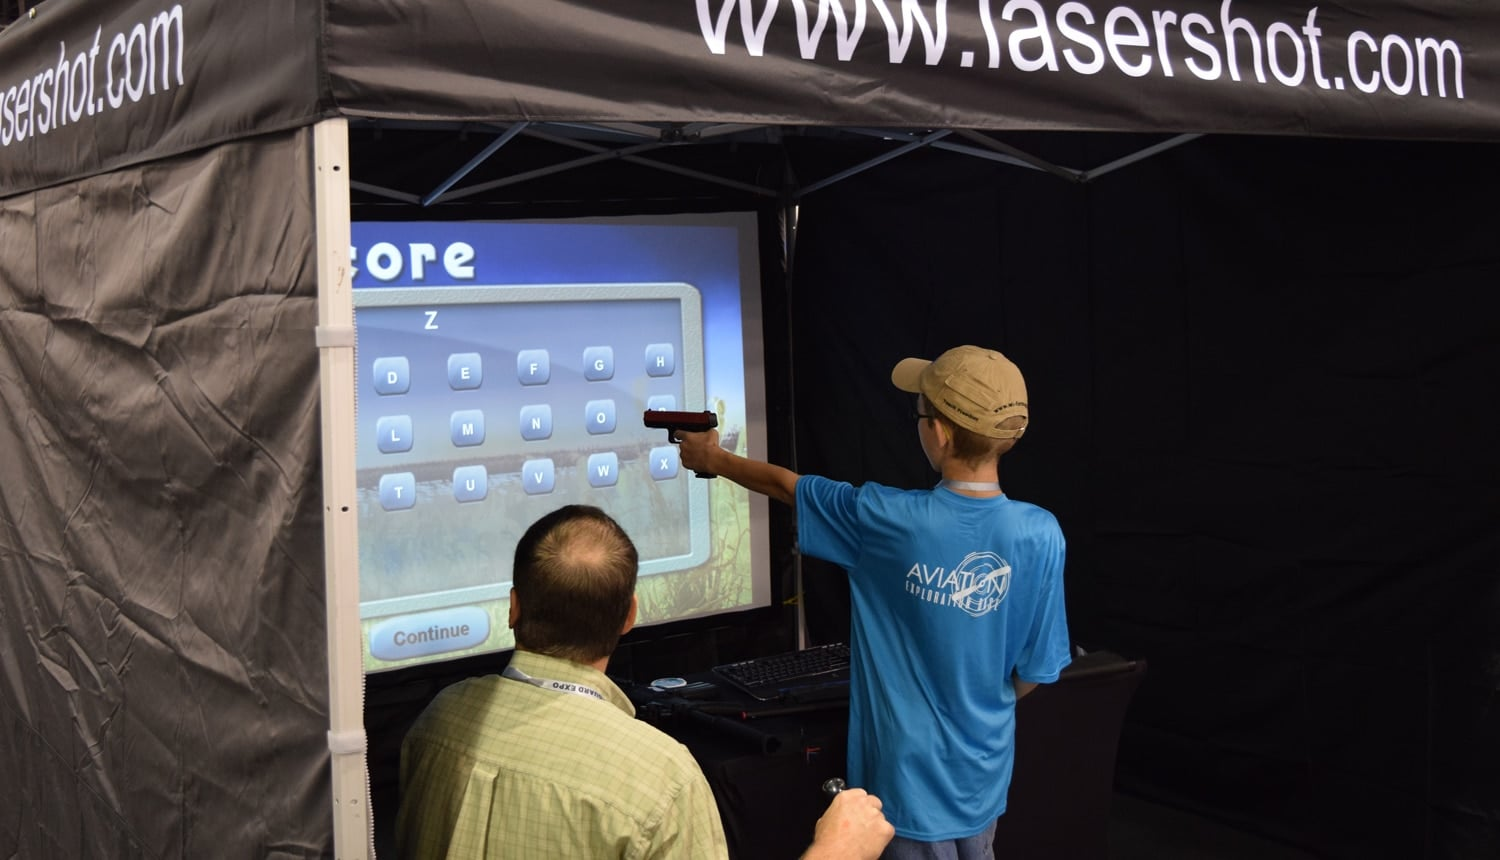 At least one person was left-handed at the expo. (Photo: Daniel Terrill/Guns.com)